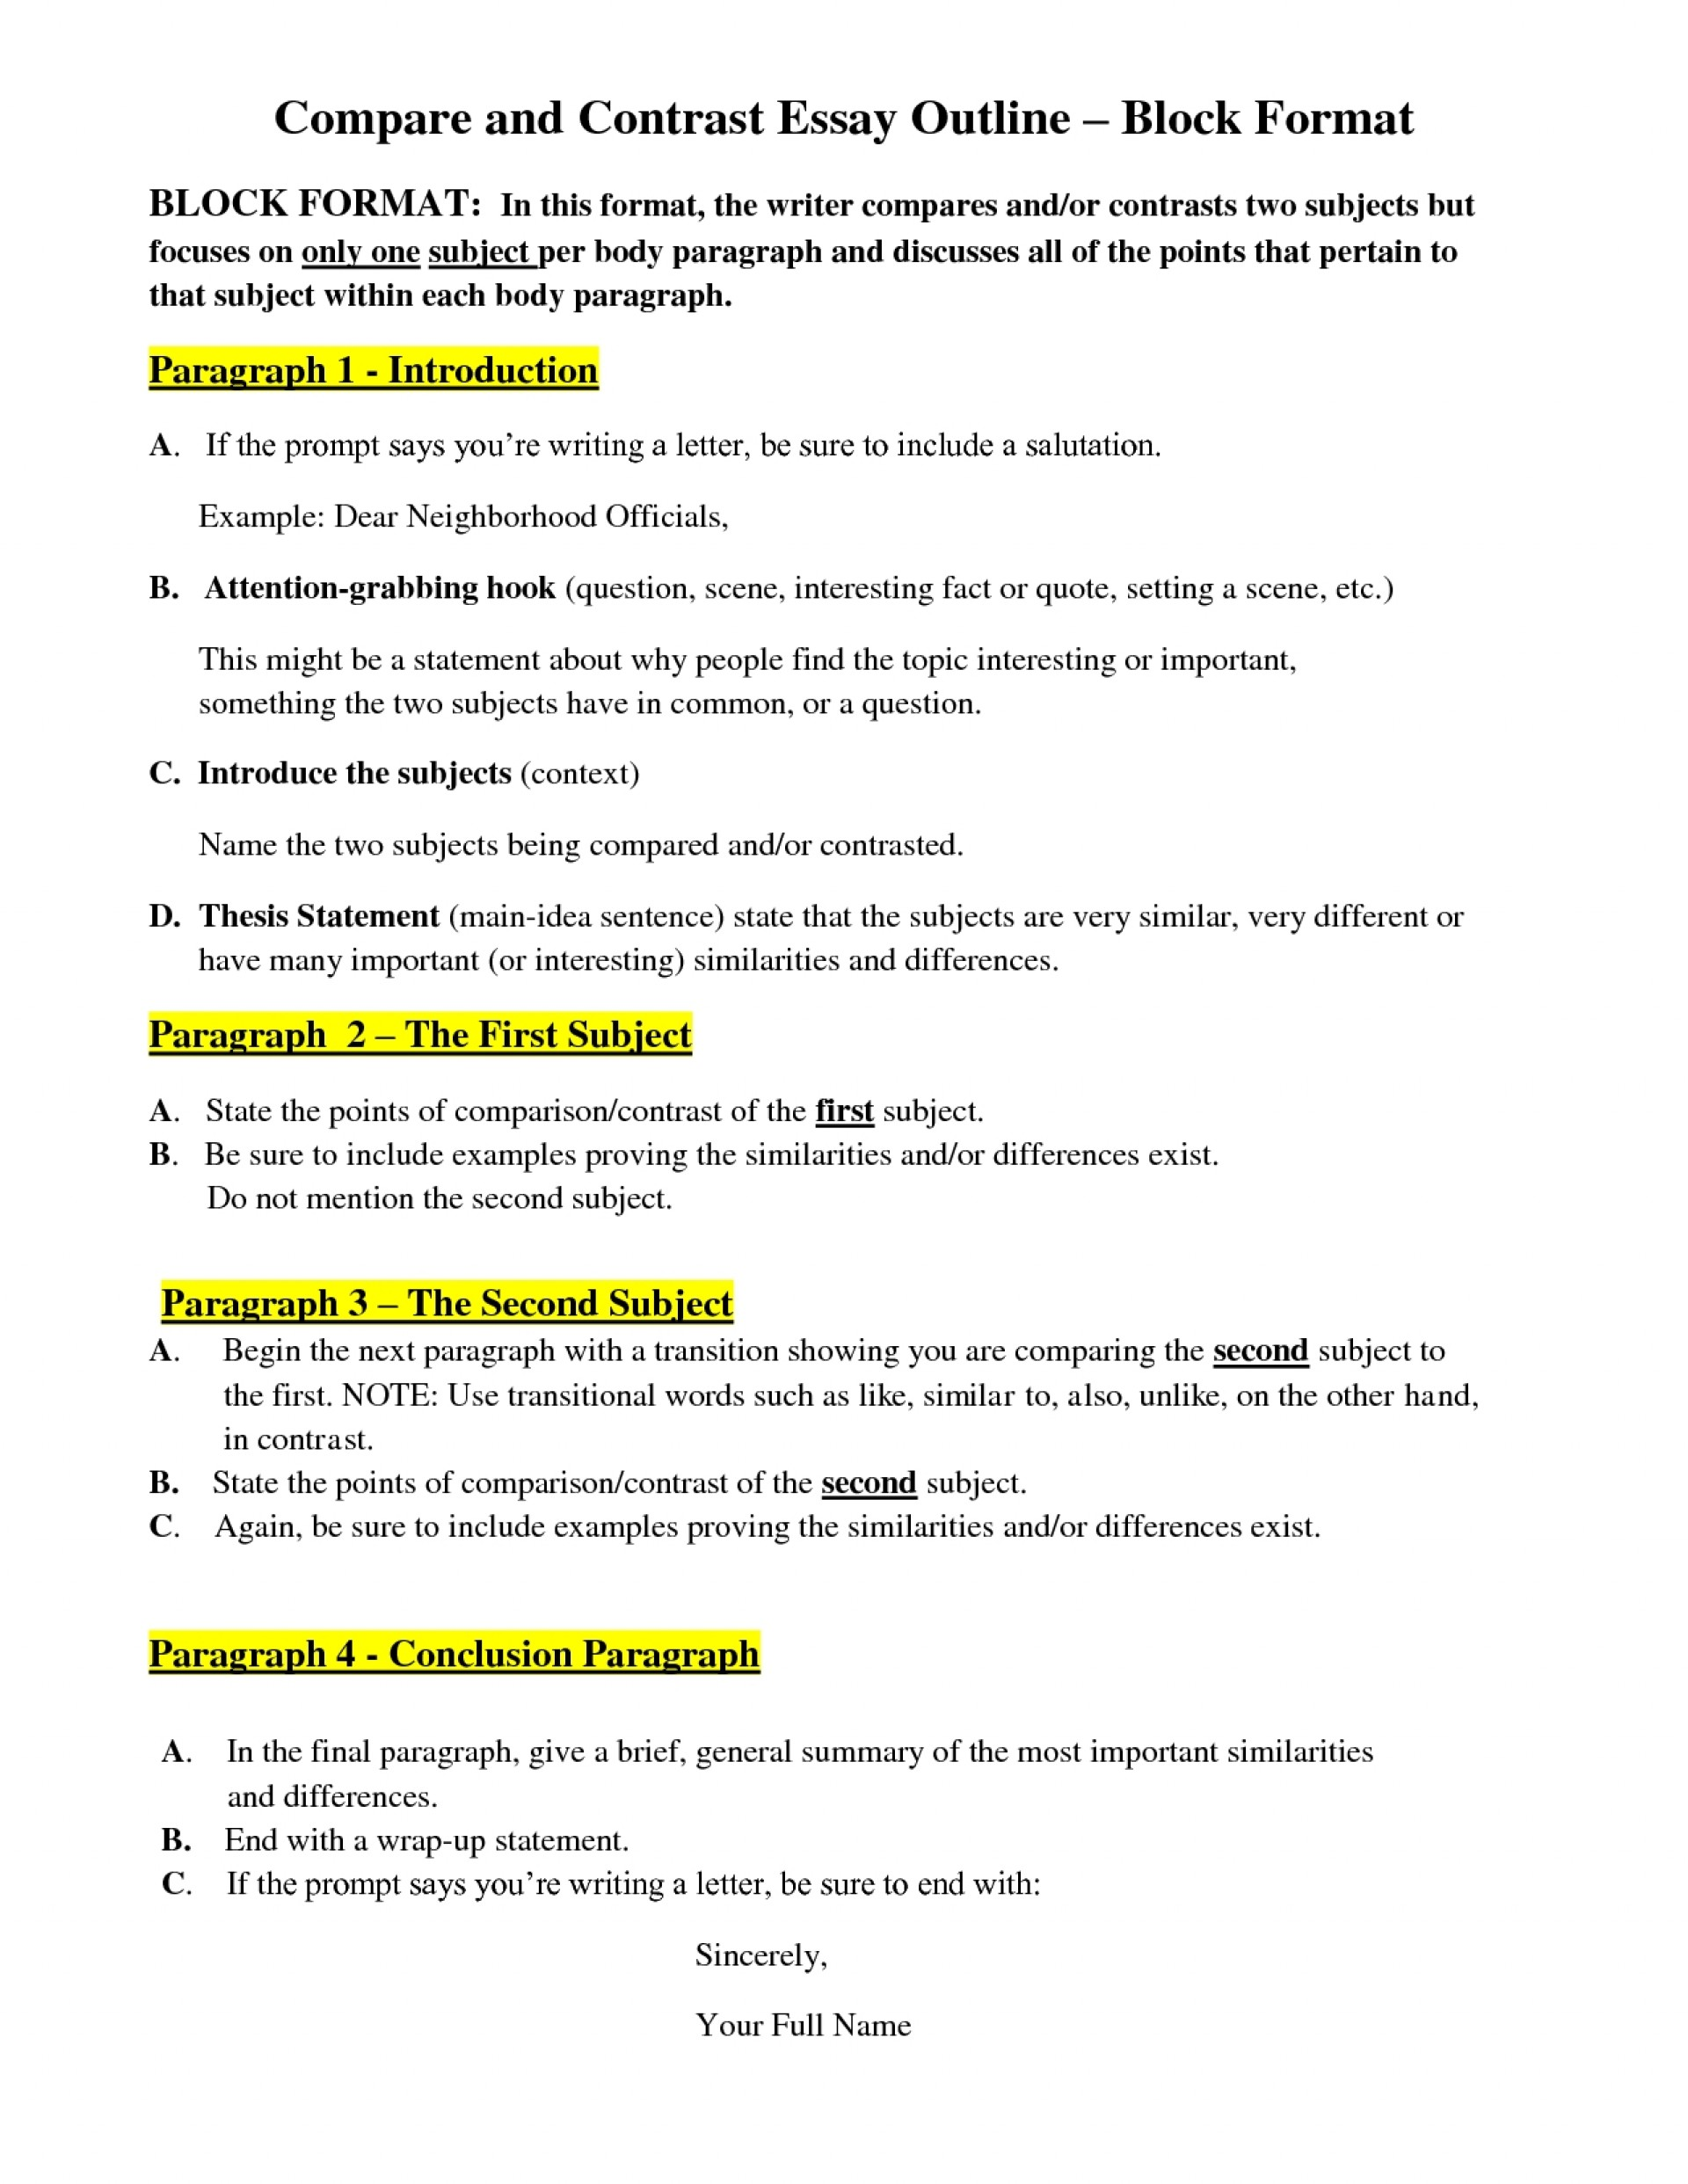 004 Essay Template Compare Contrast Outline Example Maxresdefault Creating Project Plan For Your Youtube How To An With Good Cover Letter Samples Point Wonderful By Structure Introduction 1920